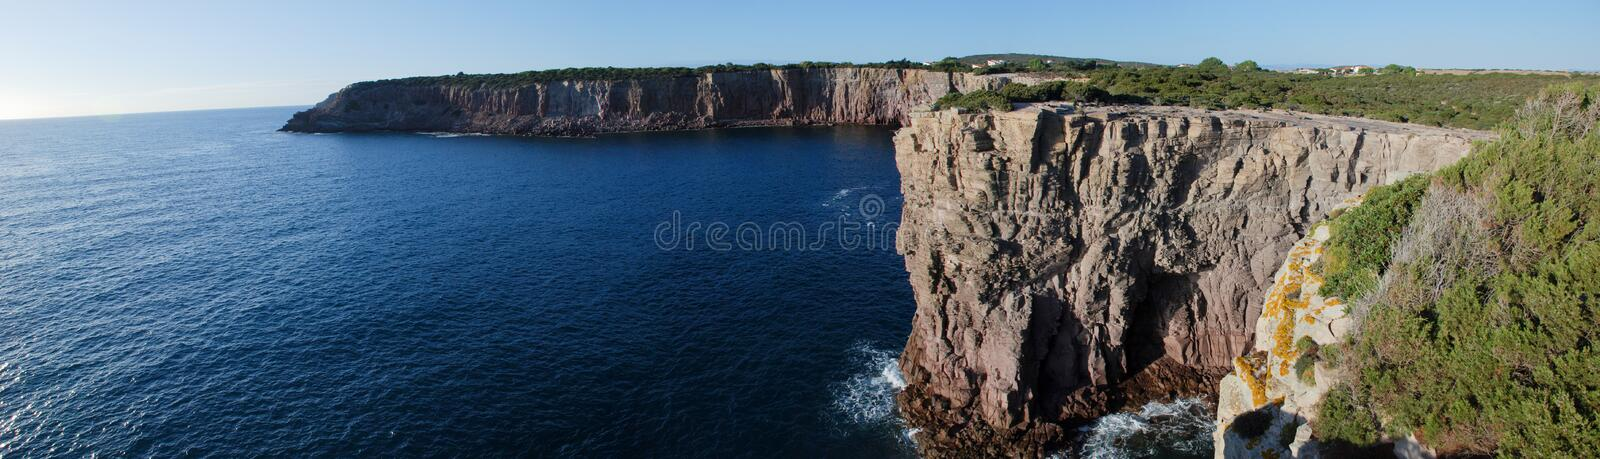 Panoramic view of a cliff stock images